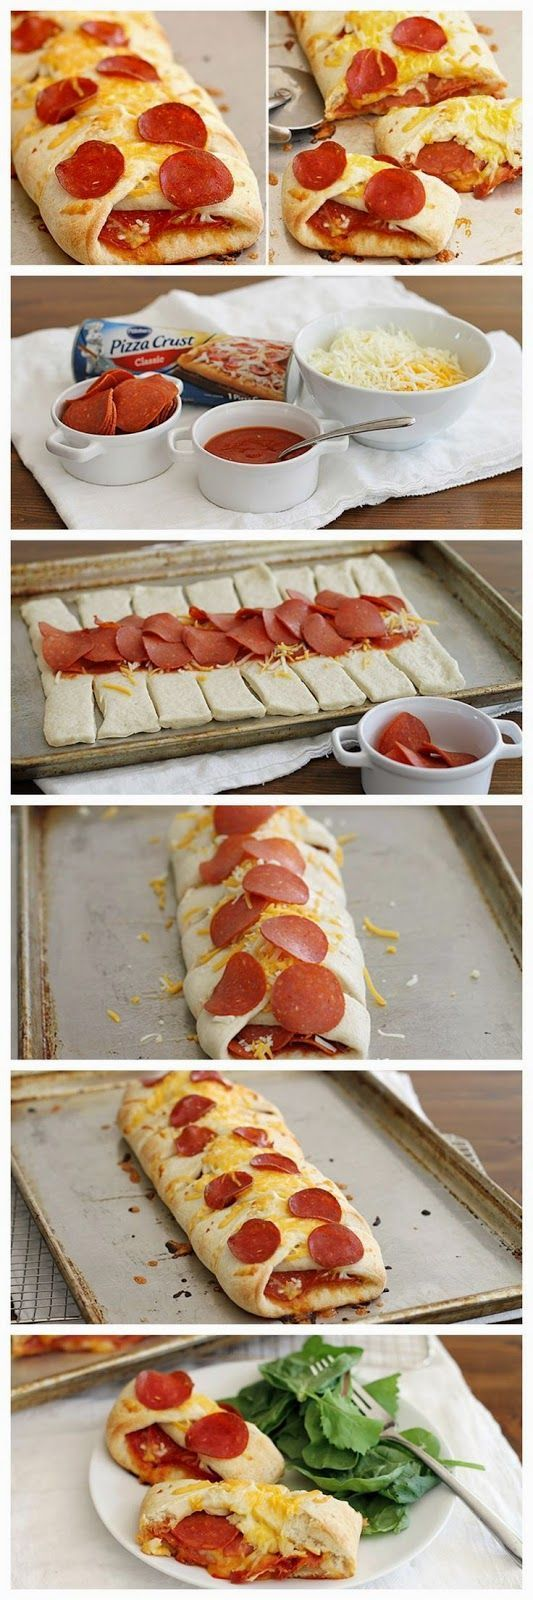 DIY Party Food : Choose-Diy: Pepperoni Pizza Braid